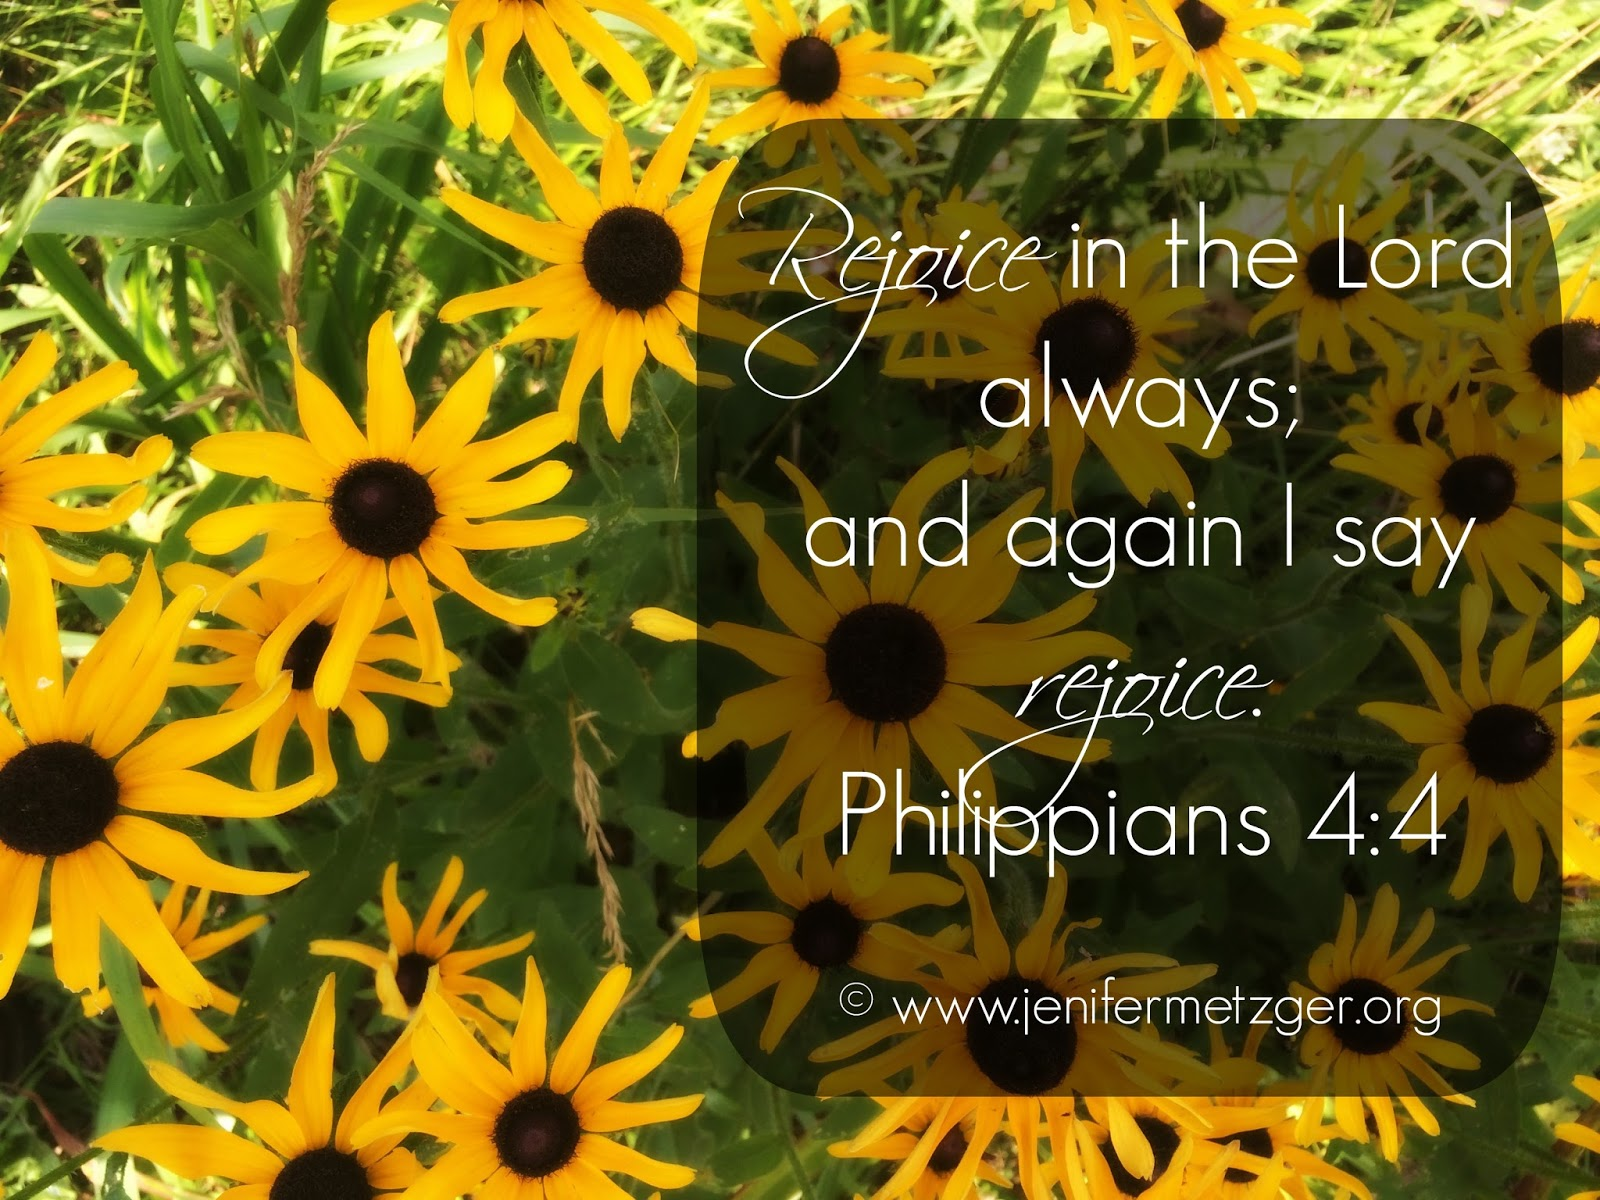 #rejoice in the #Lord always and again I say #rejoice. #philippians 4:4